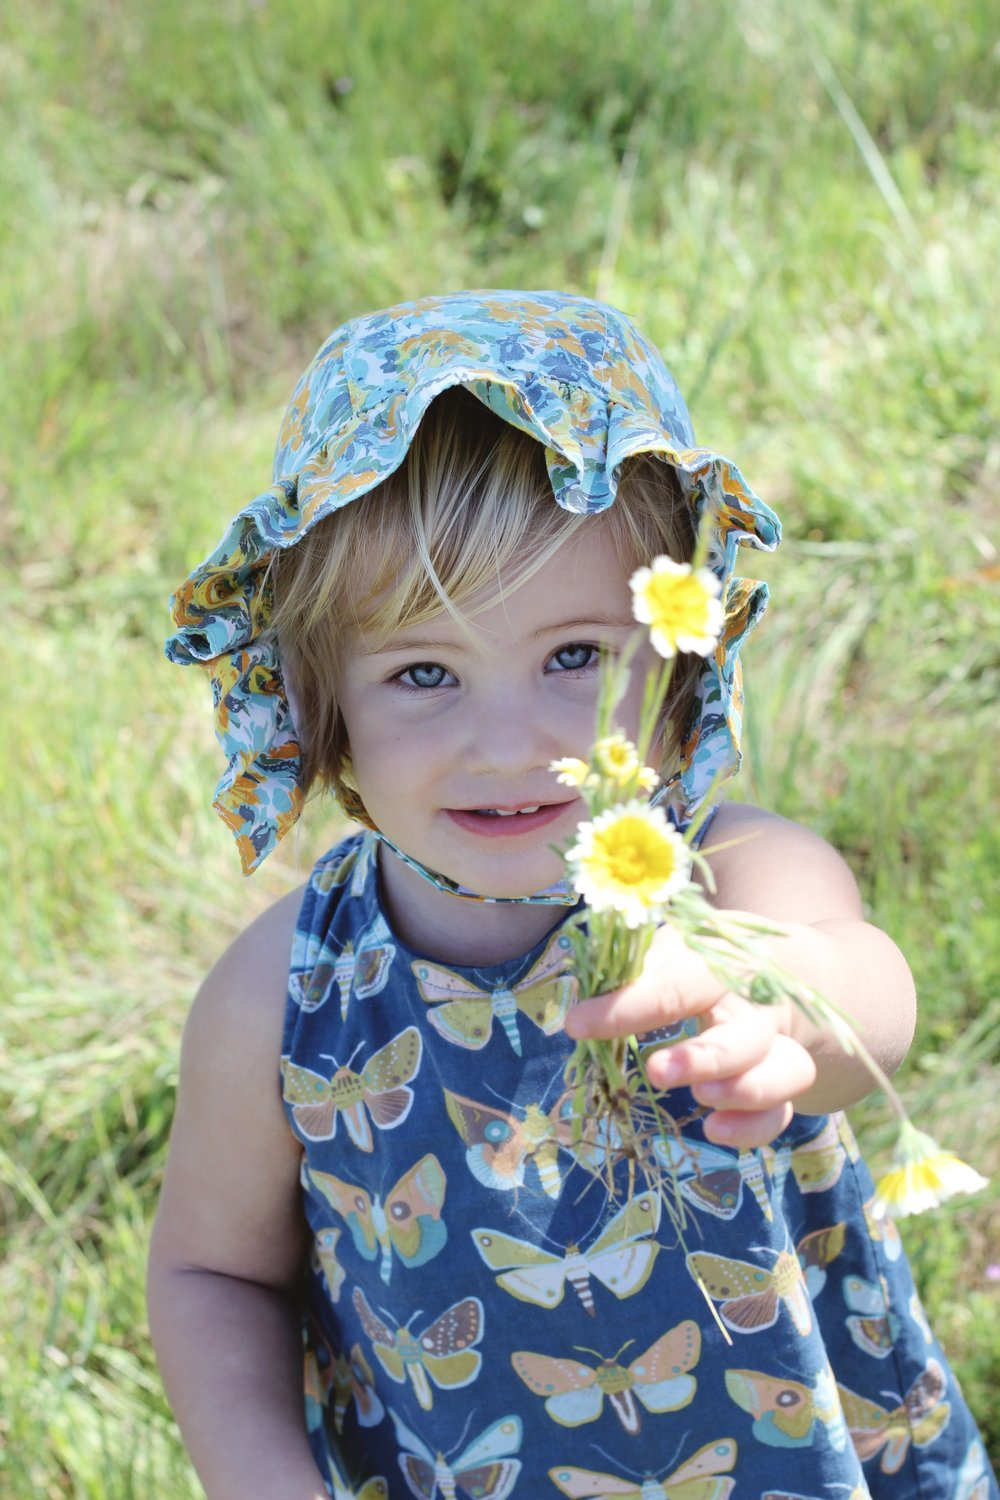 Ruffle Baby Sunbonnet by Blue Corduroy.  photo by Native Fern.